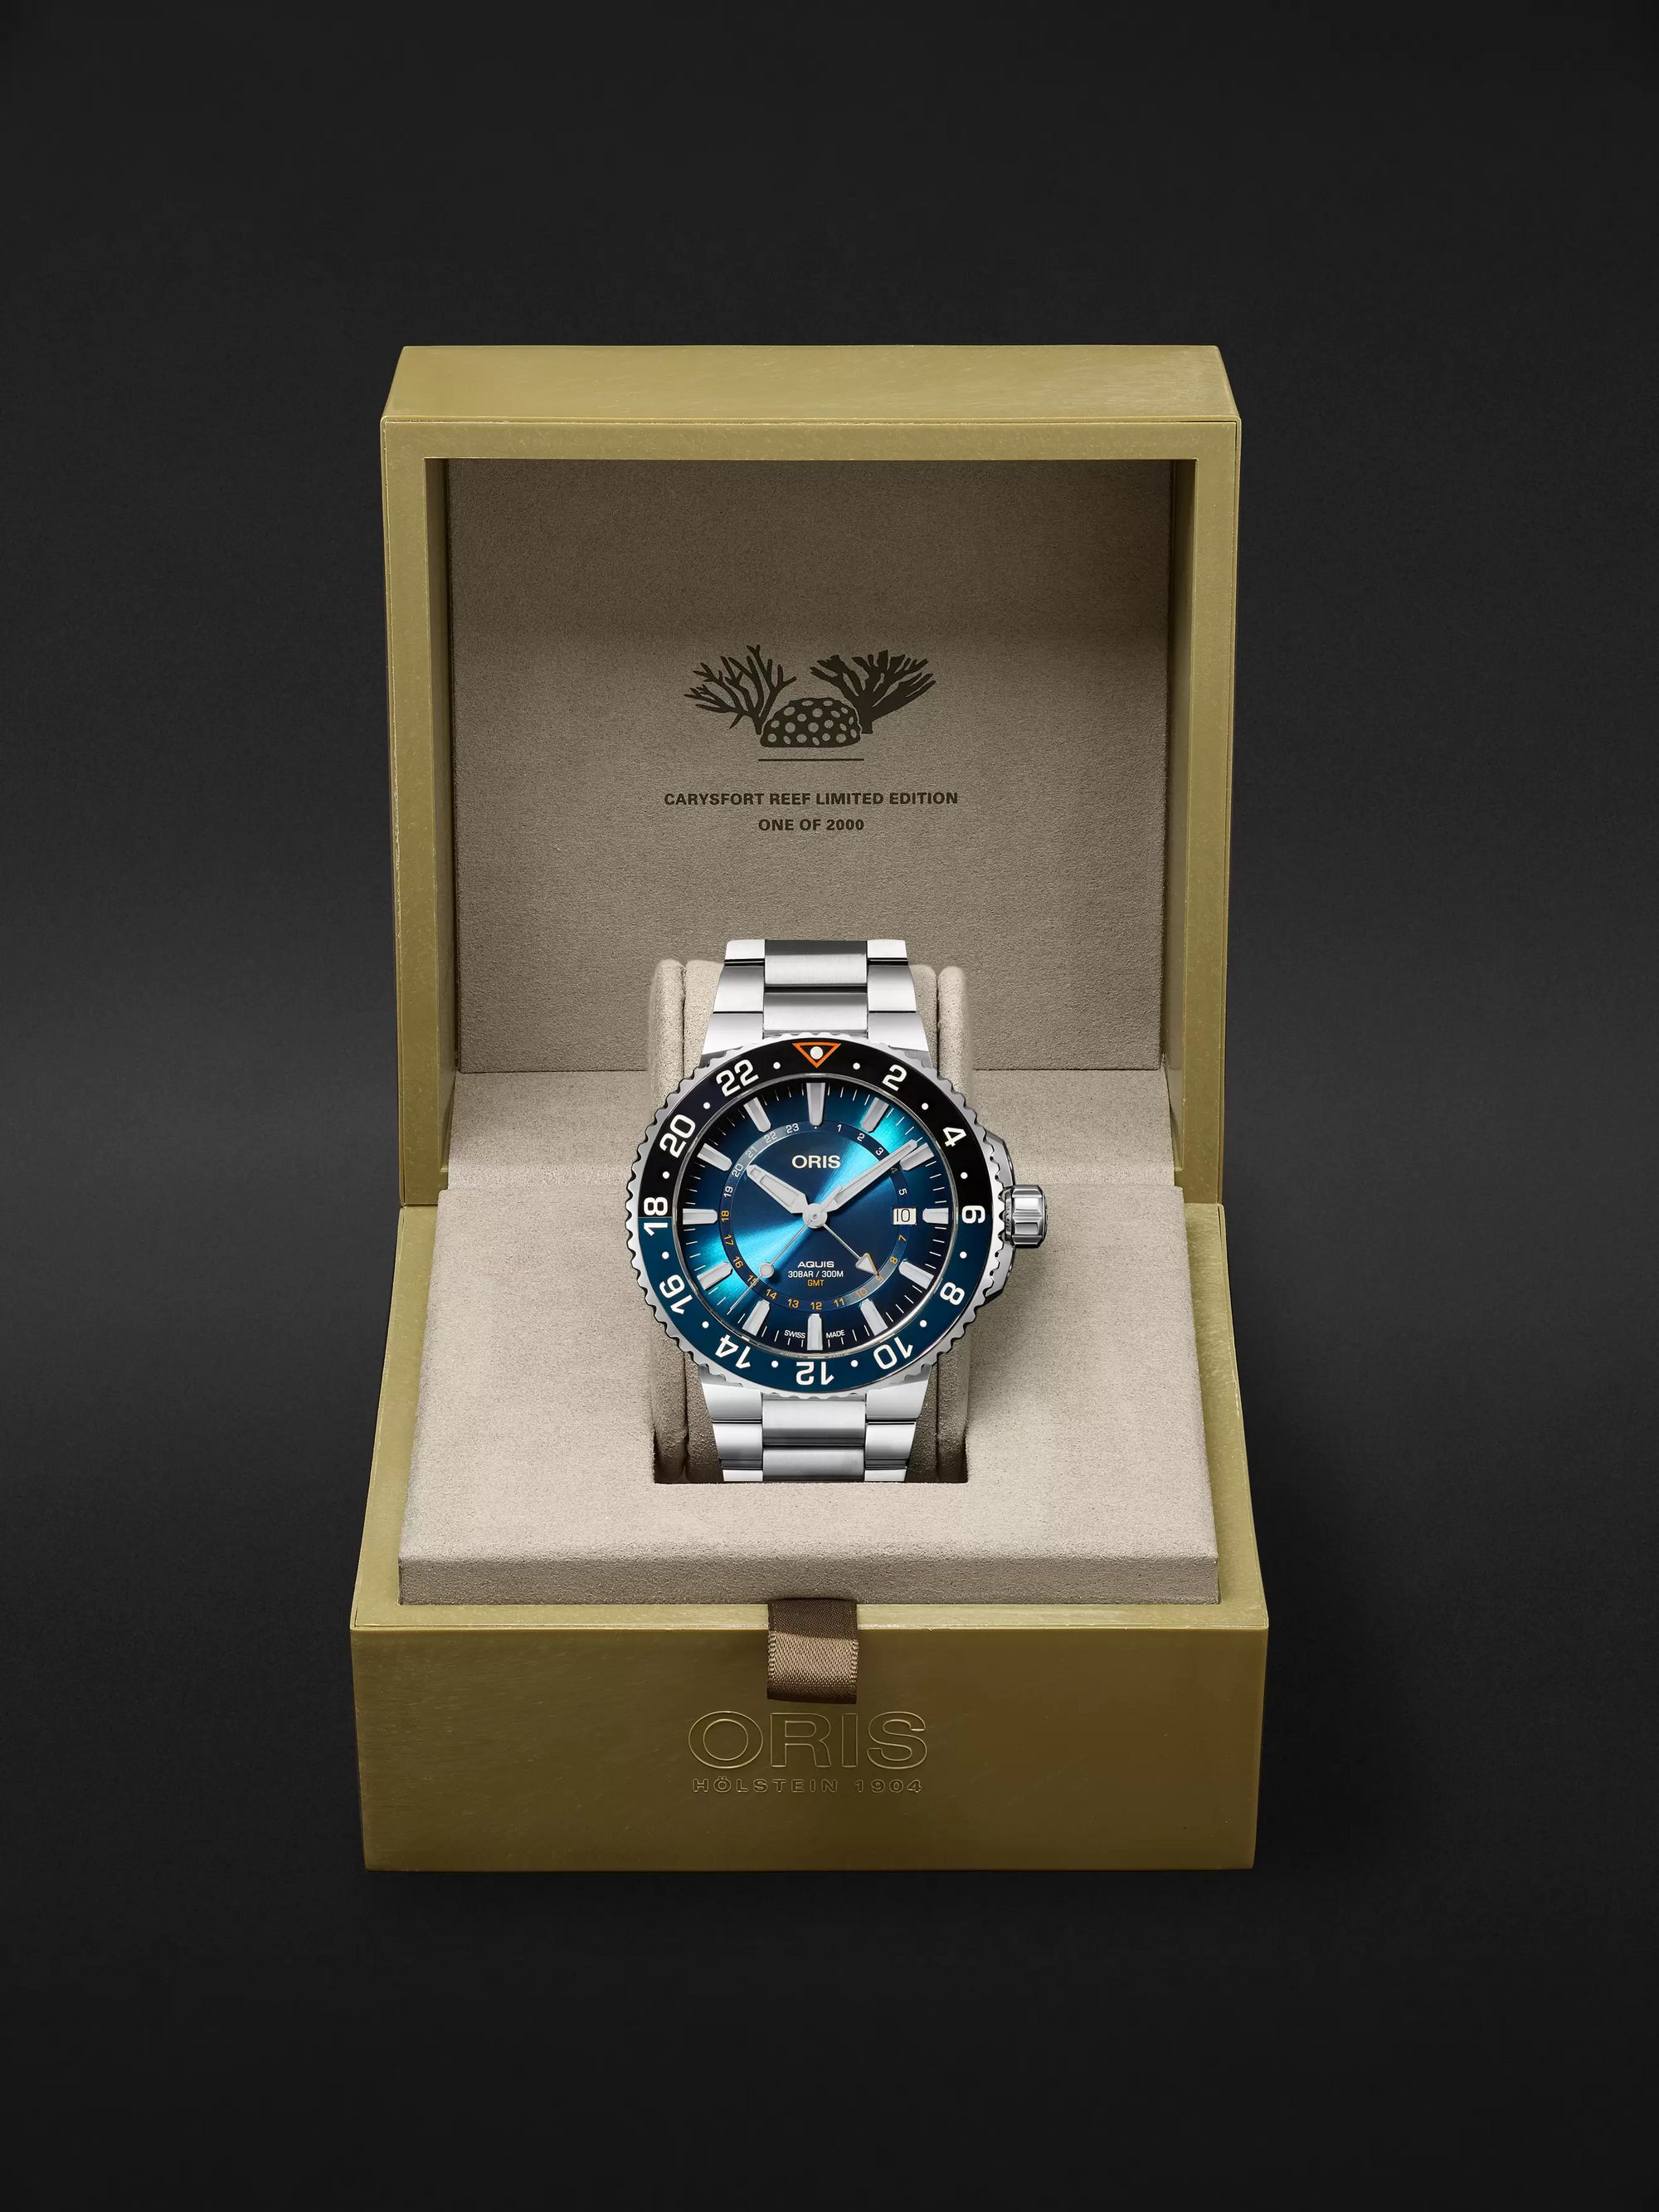 ORIS Aquis Carysfort Reef Limited Edition Automatic 43.5mm Stainless Steel Watch, Ref. No. 01 798 7754 4185-Set MB